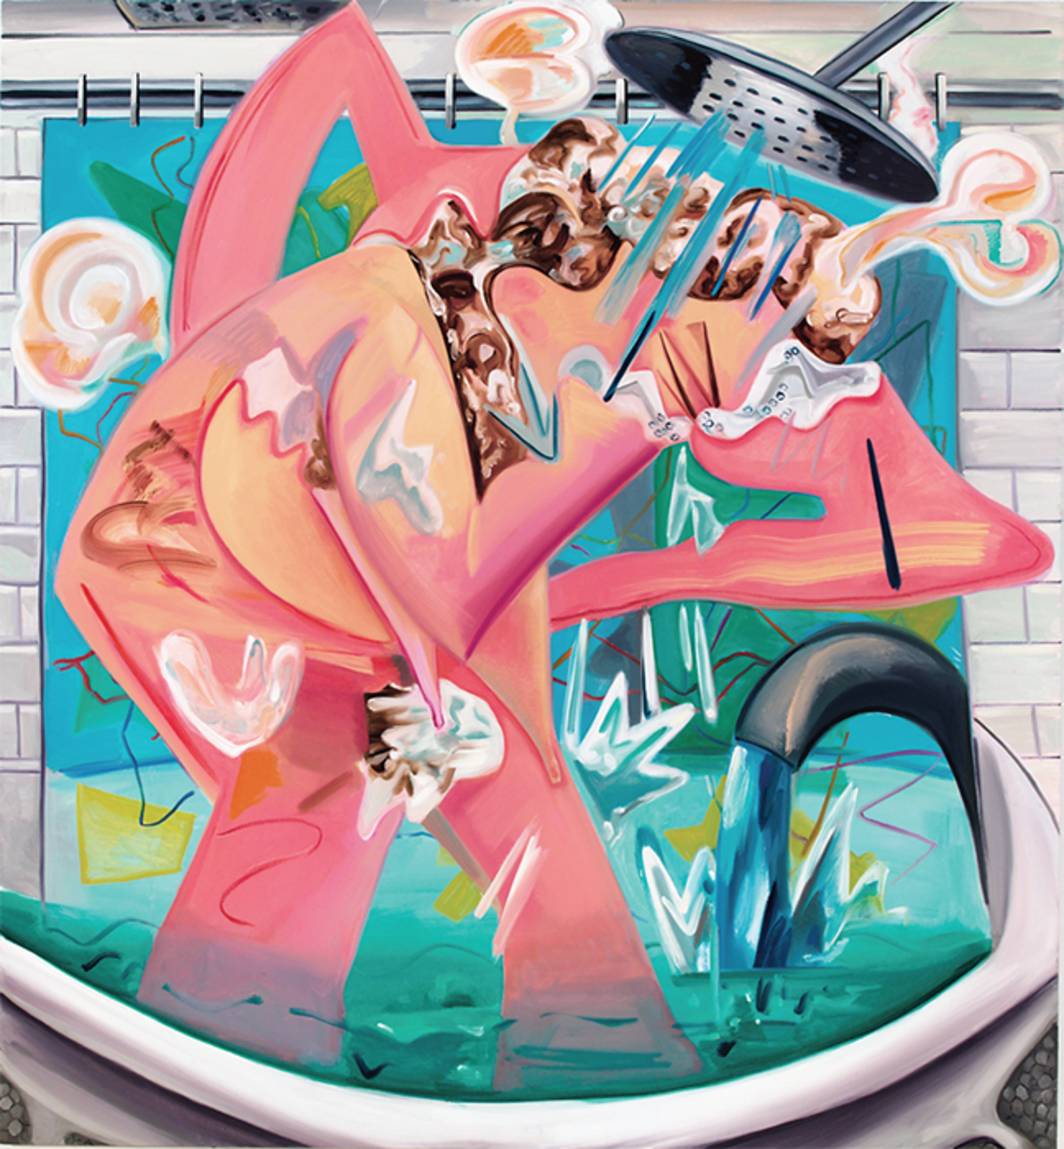 "Dana Schutz, Slow Motion Shower, 2015, oil on canvas, 78x72""."